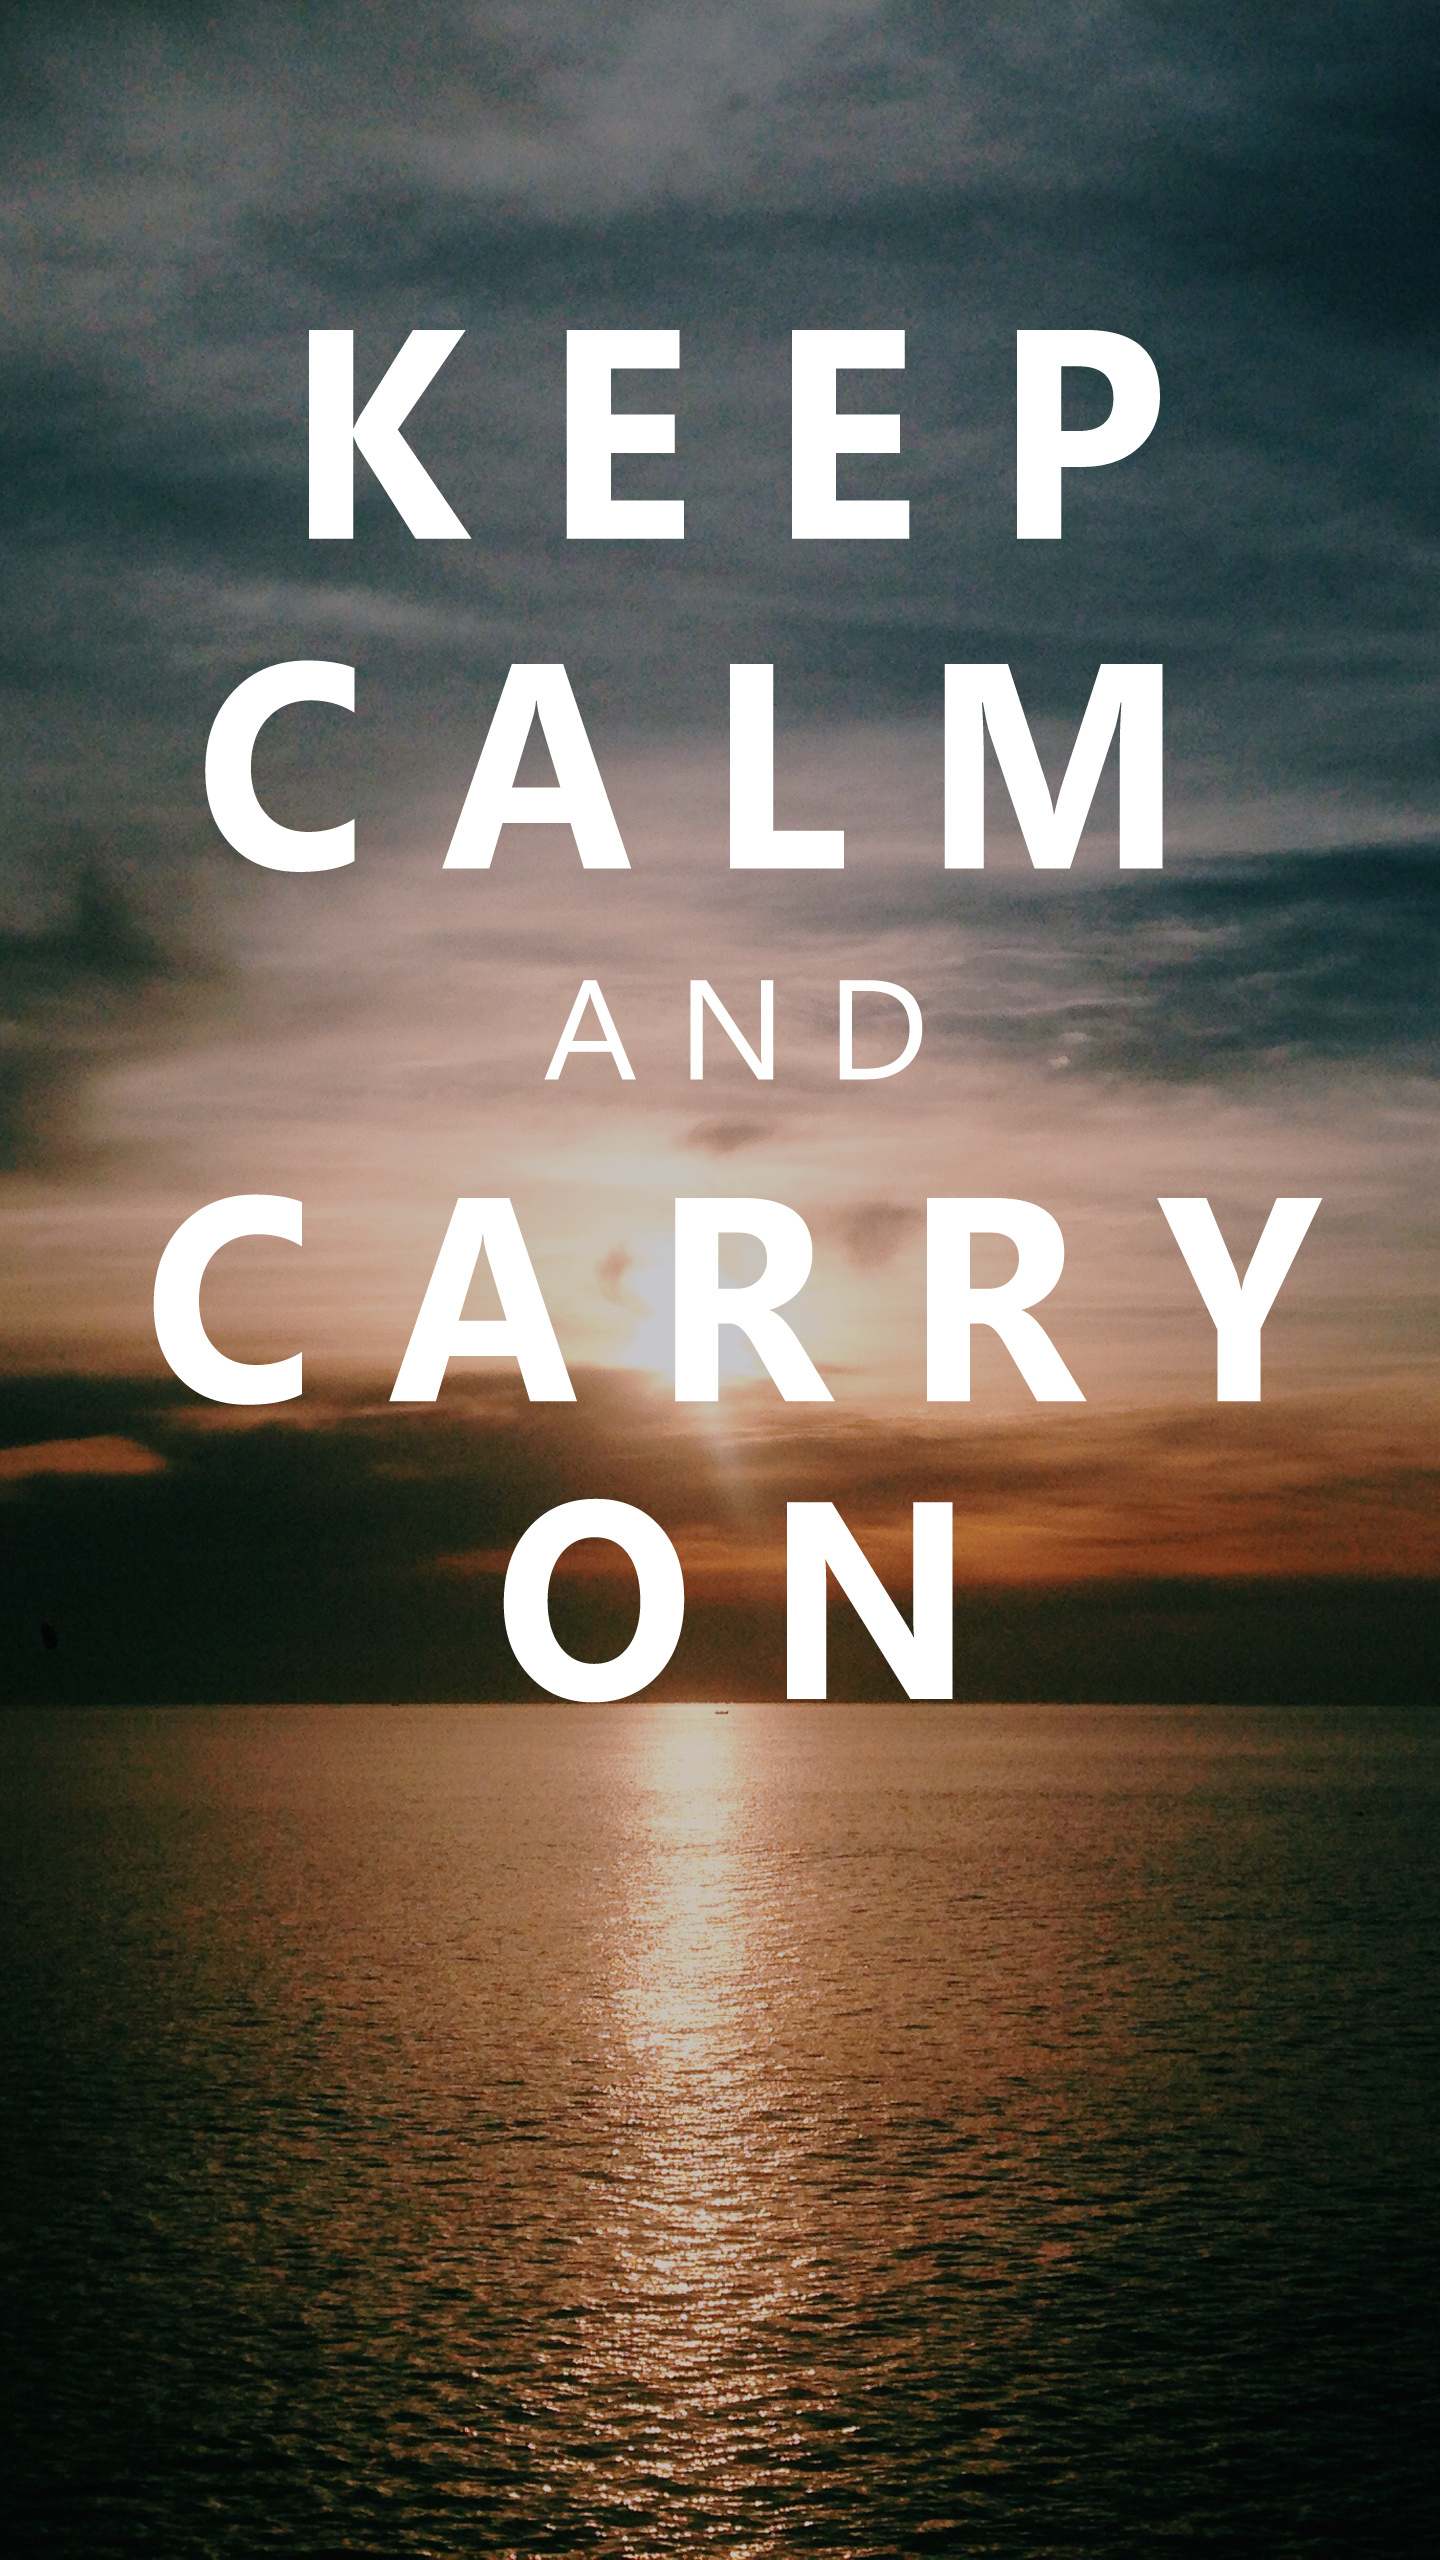 keep calm and carry on 平面 图案 卡尔库鲁斯